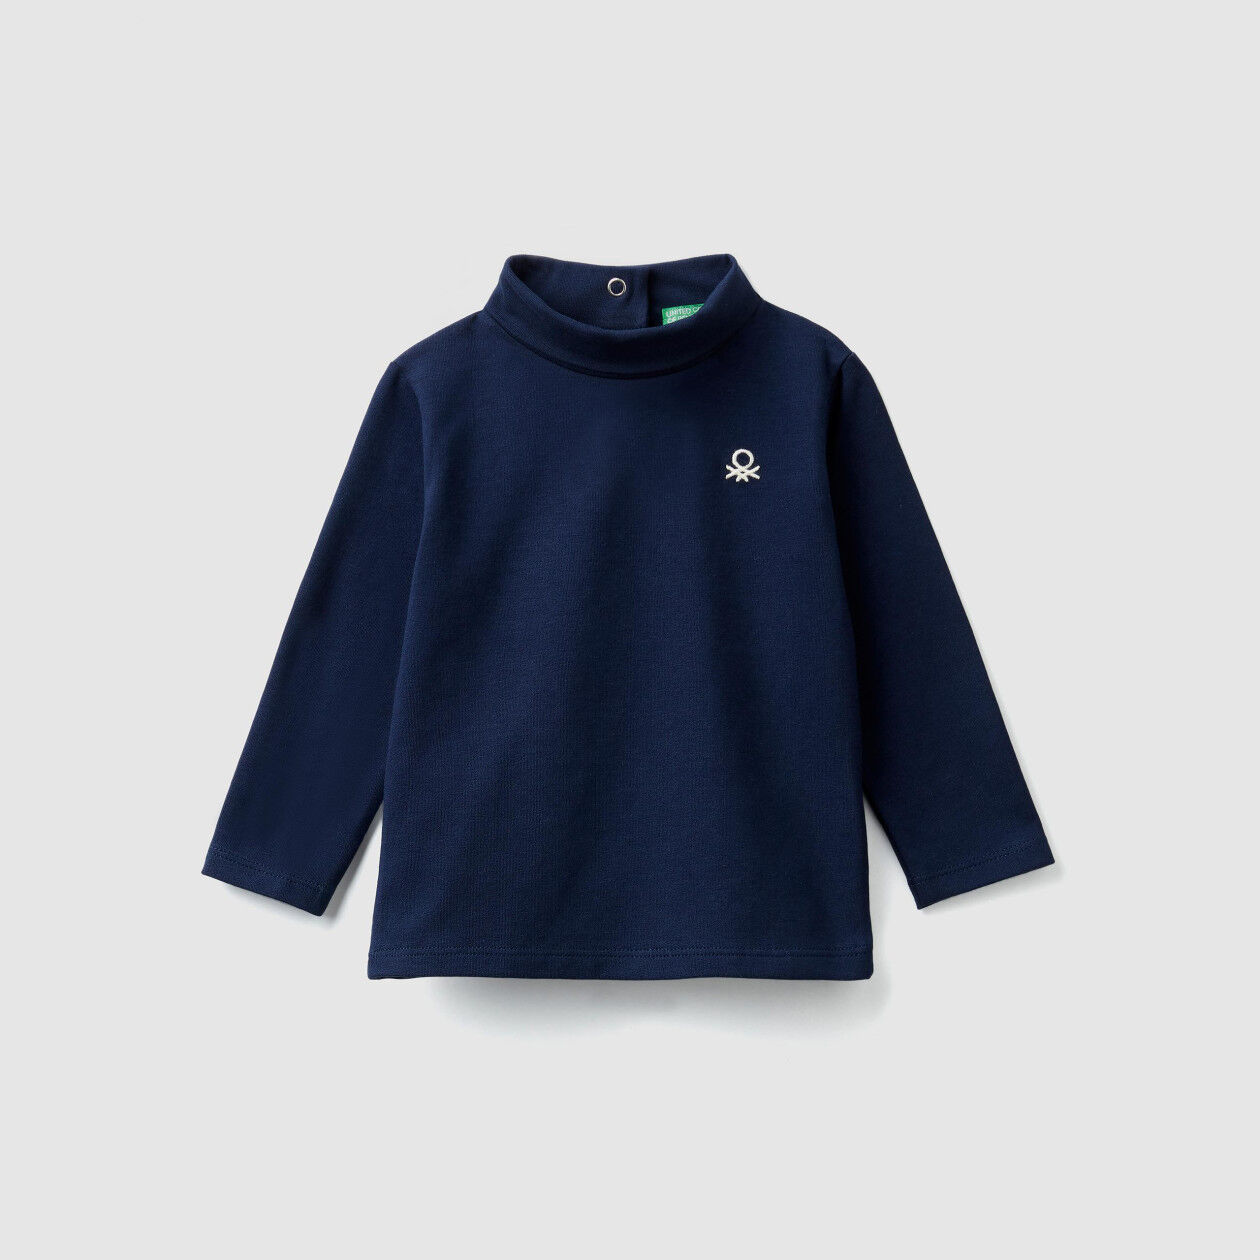 T-shirt with logo and buttons